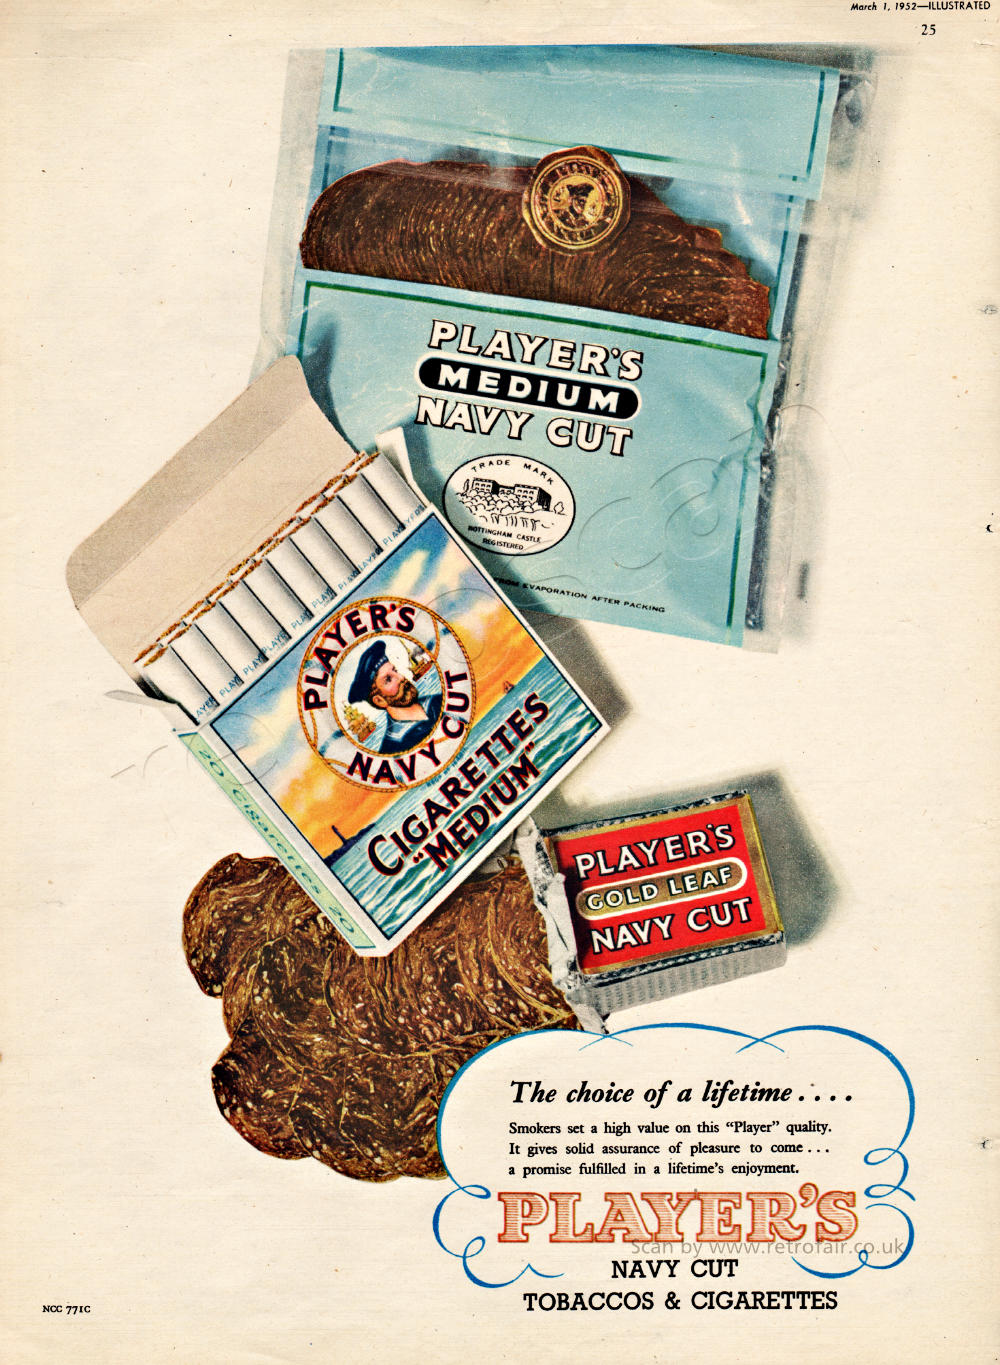 1952 Players Navy Cut Cigarettes & Tobacco Vintage Ad